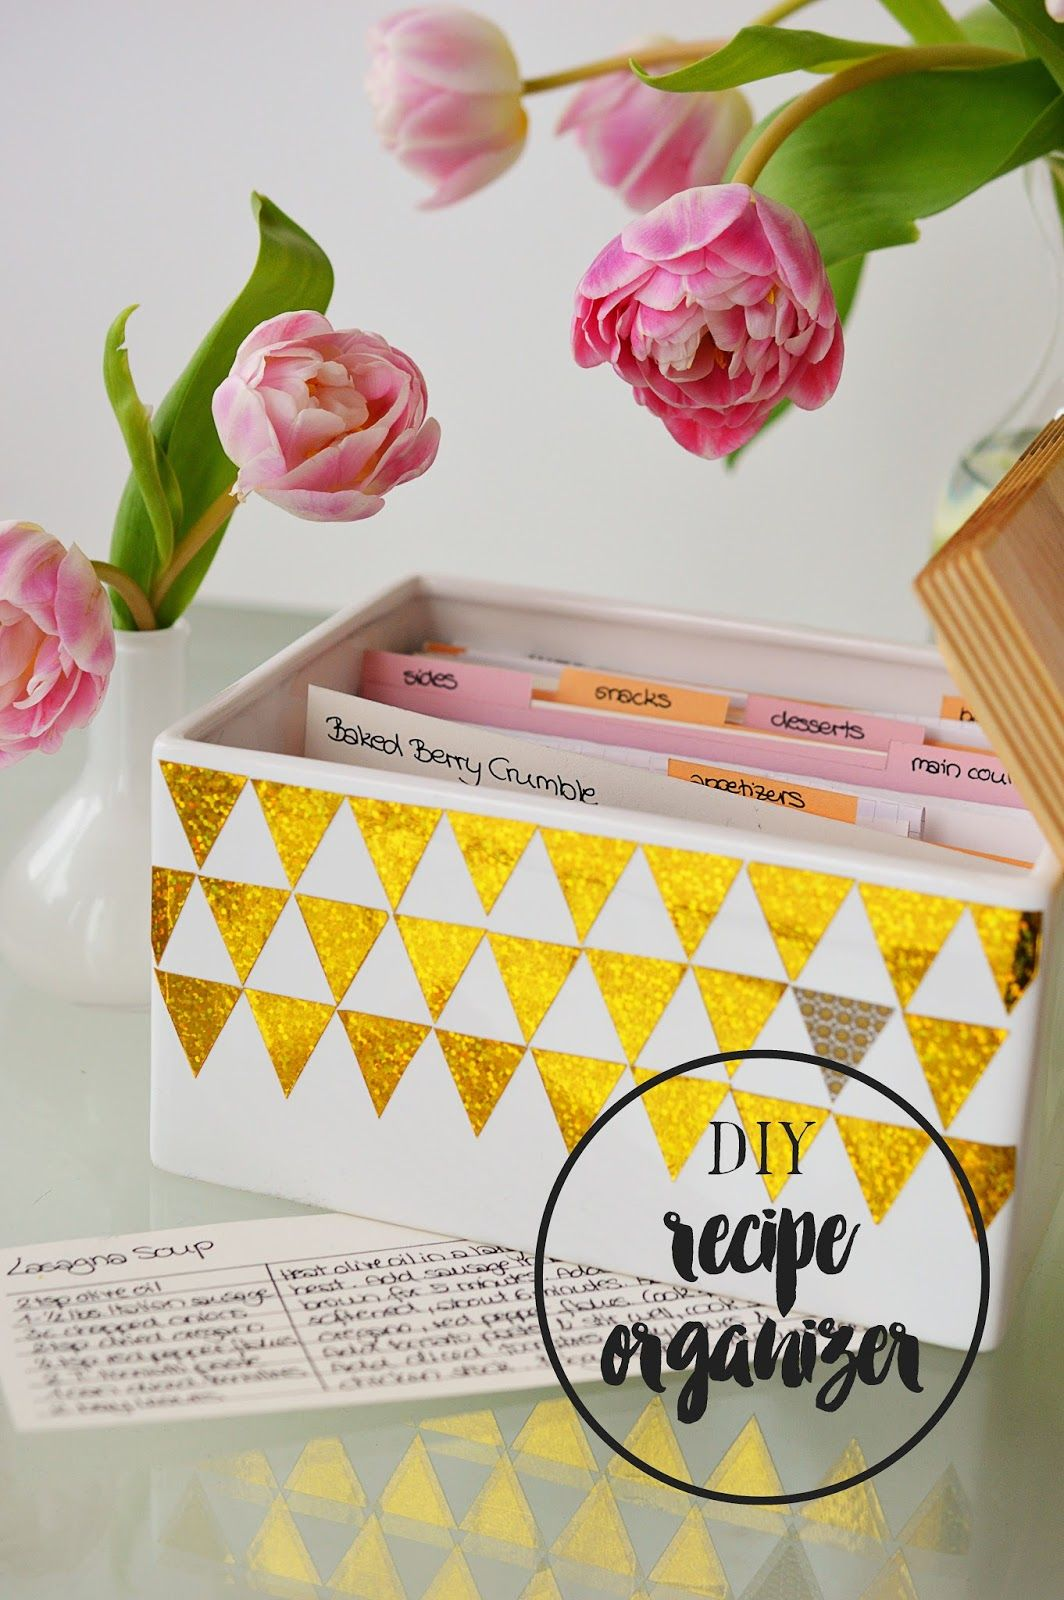 DIY Bread Bin Recipe Organizer | Motte's Blog